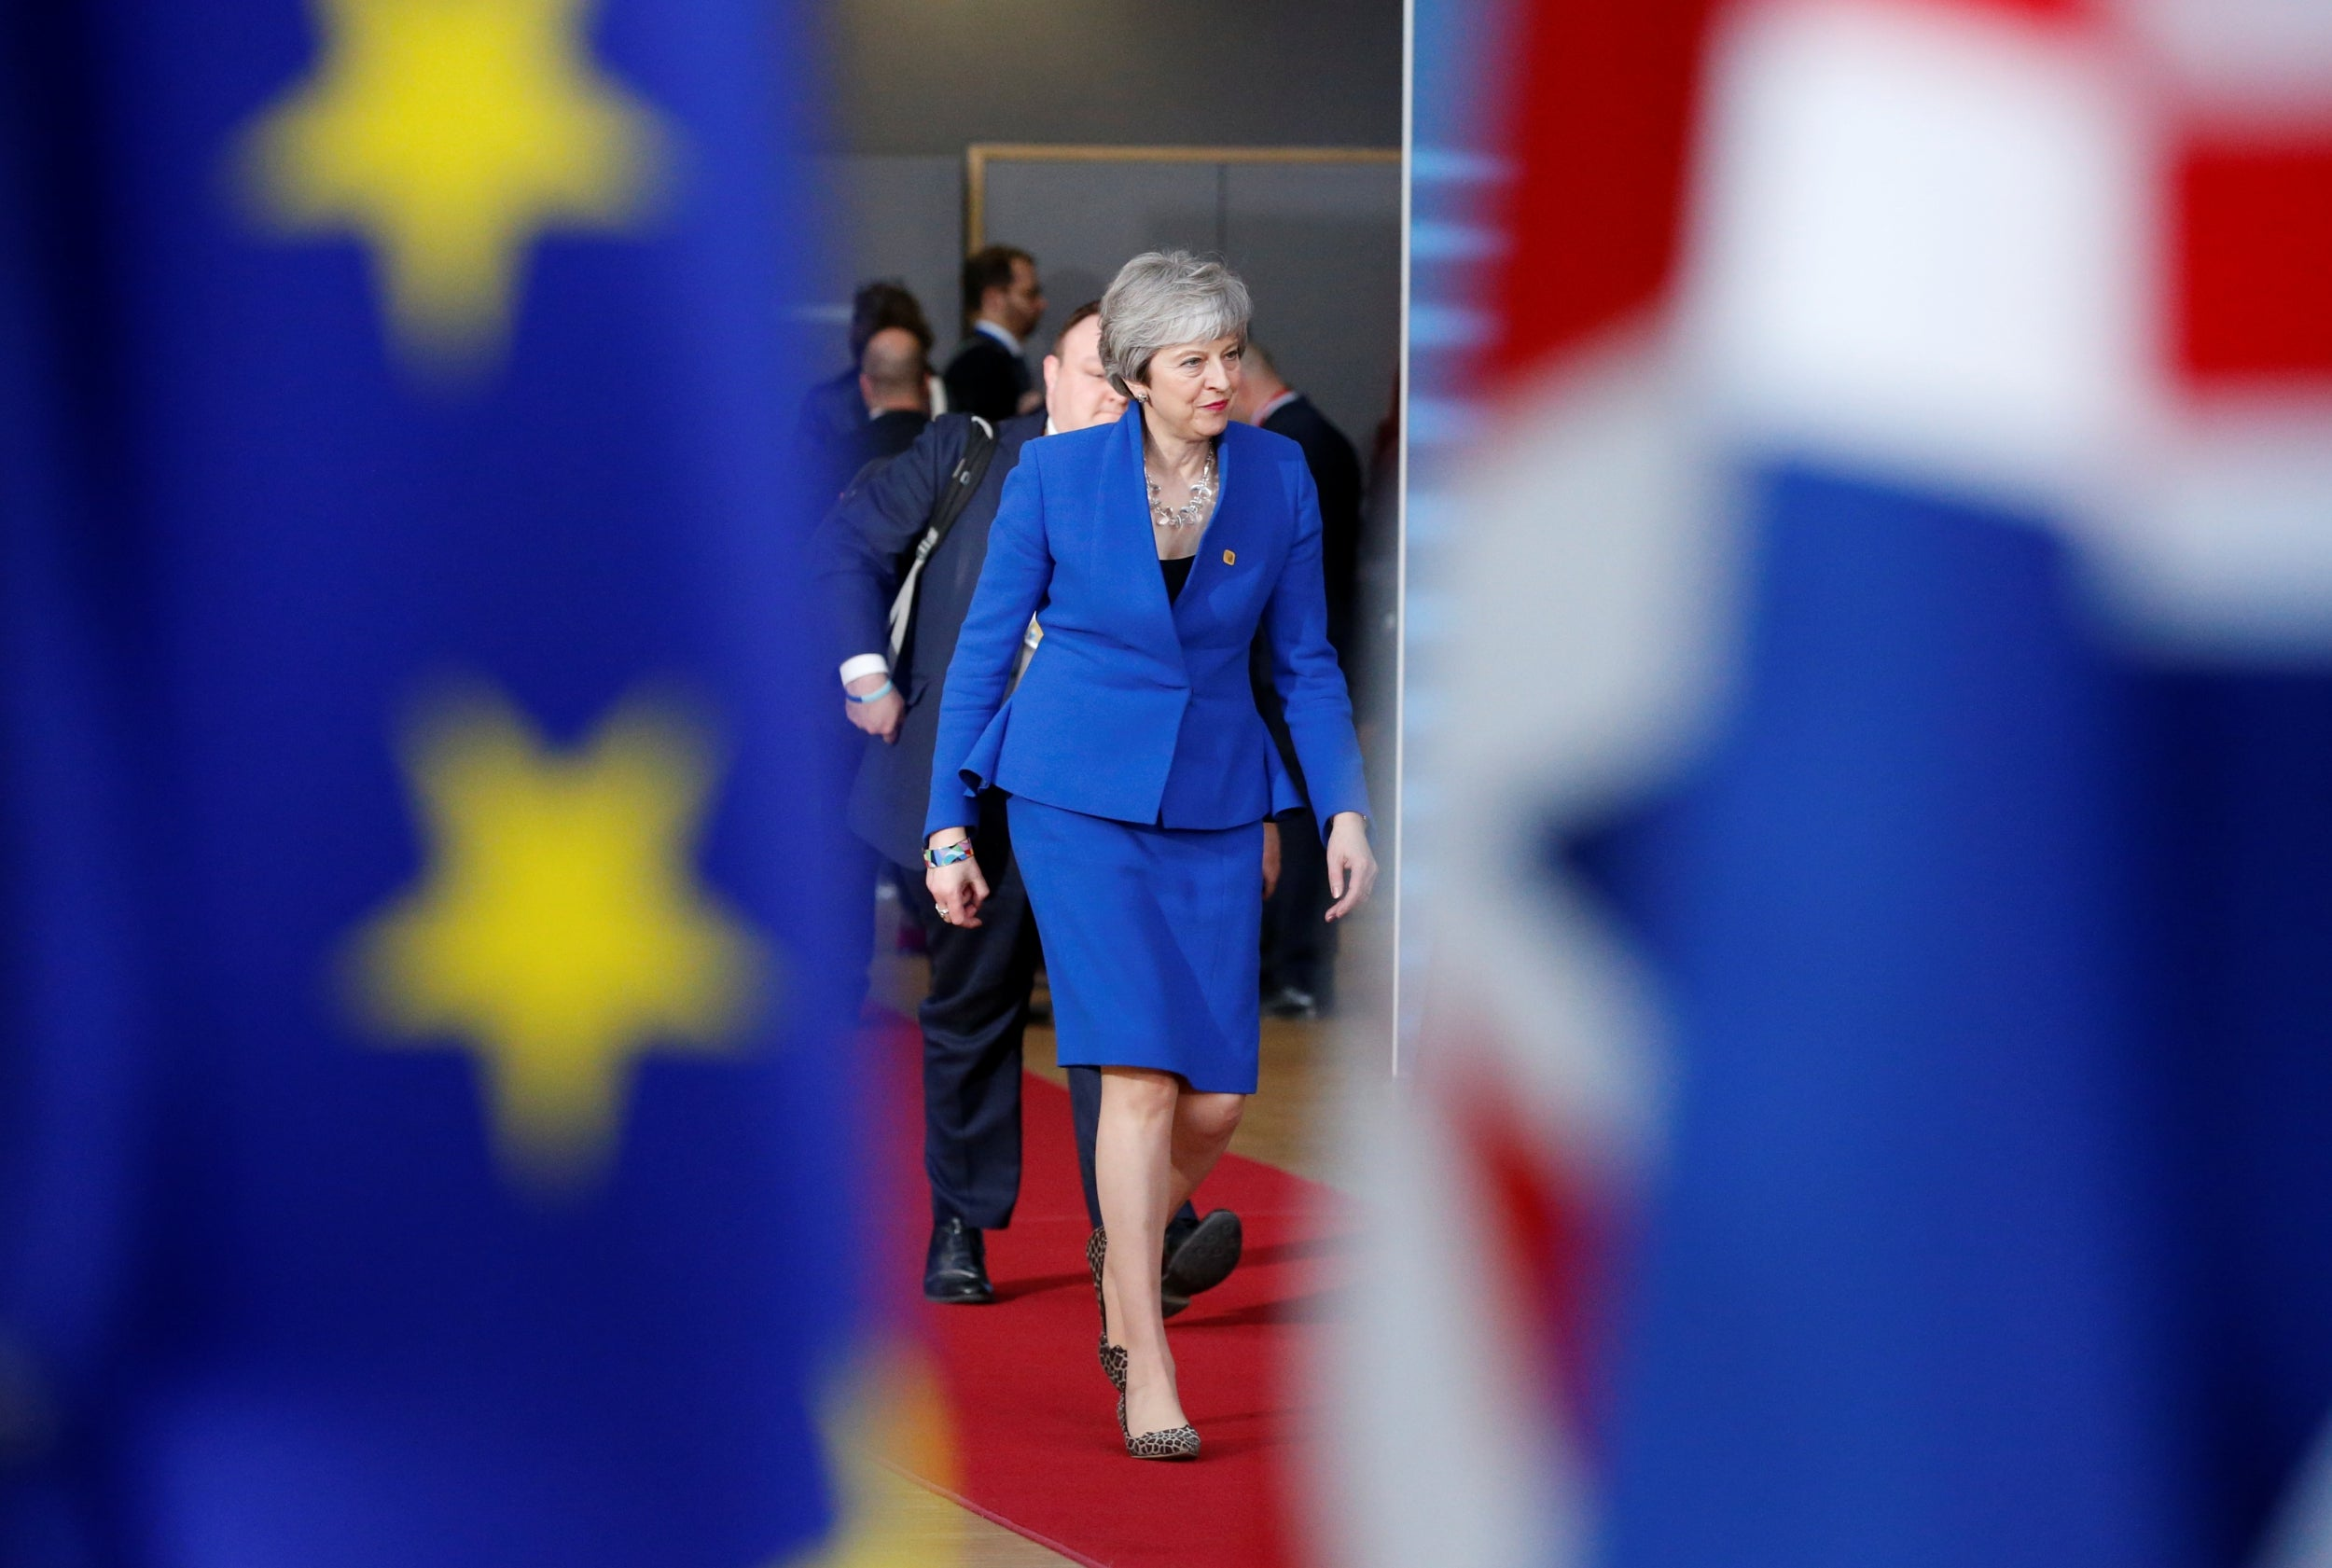 There are now only two choices, revoke or referendum – no wonder Brexiteers are coming round to a Final Say